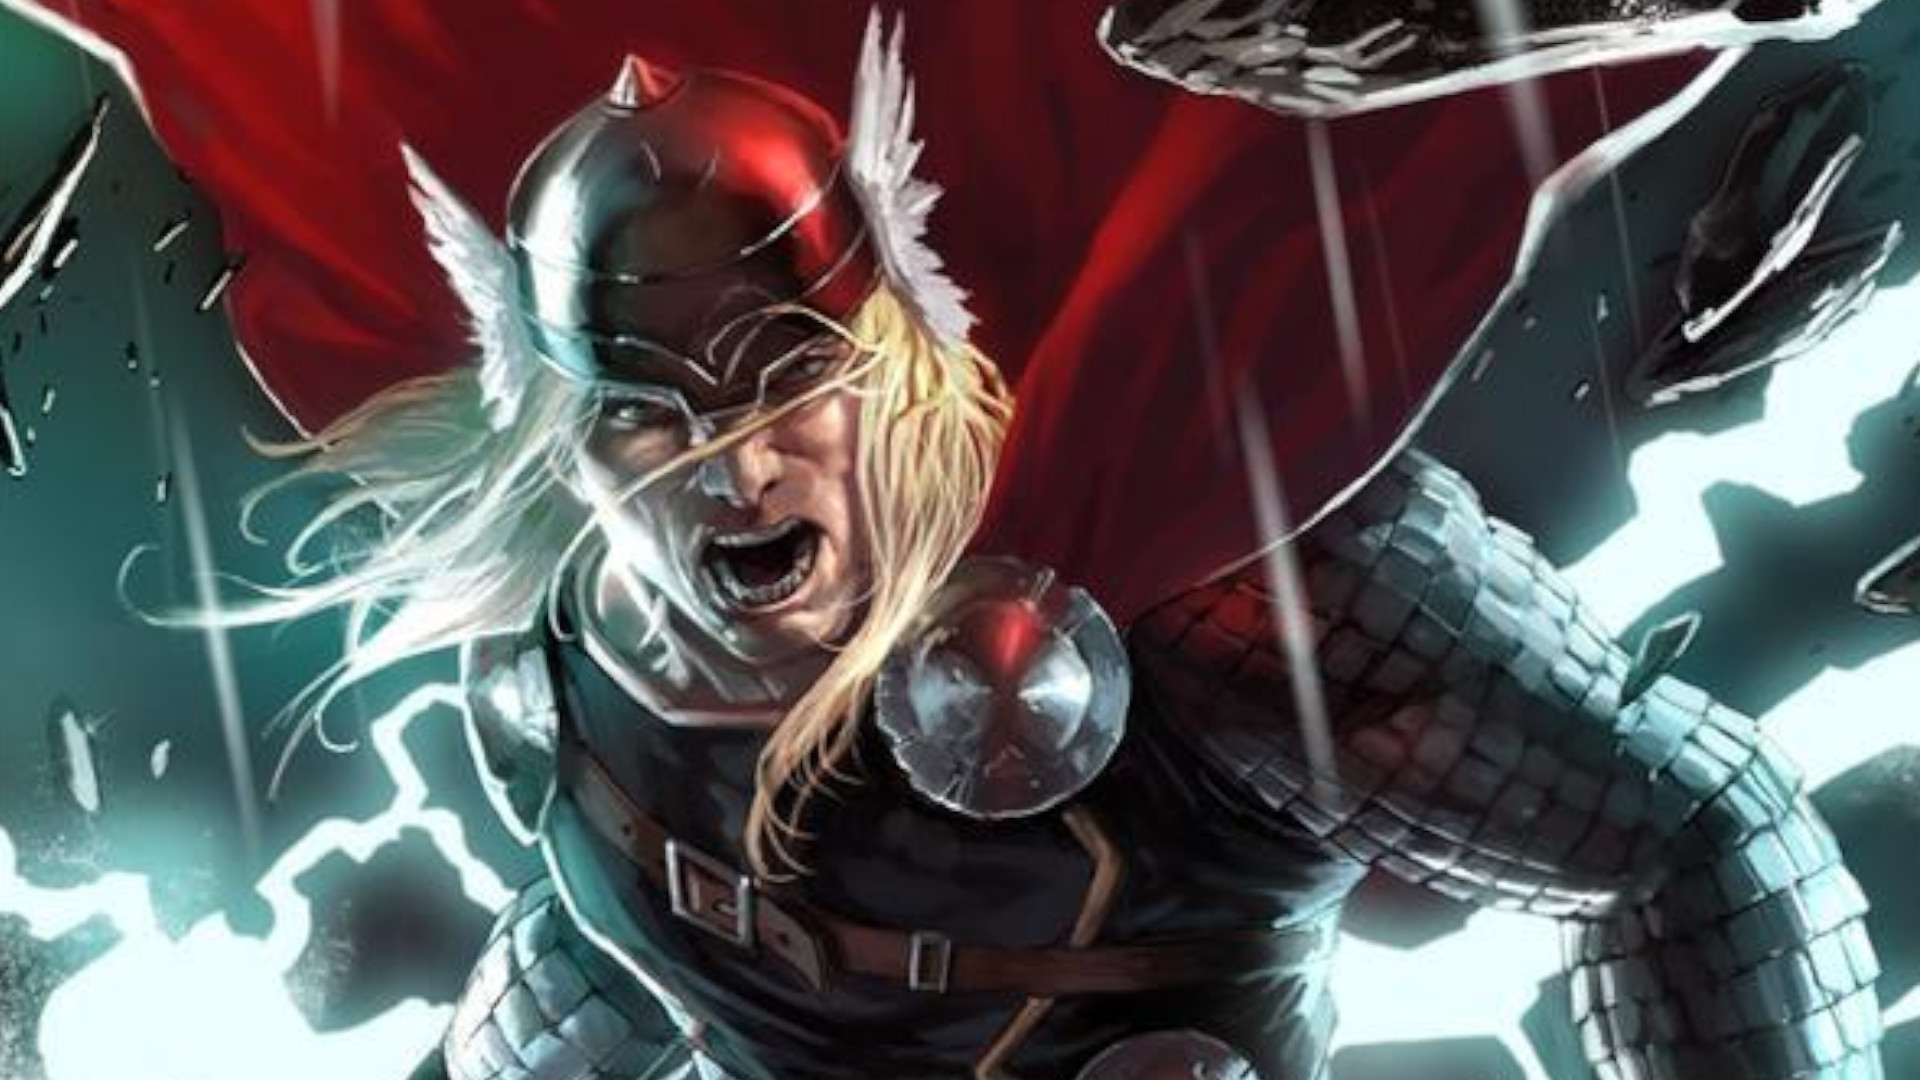 Looks Like Fortnite Chapter 2 Season 4 Will Feature Thor And More Marvel Content Pcgamesn